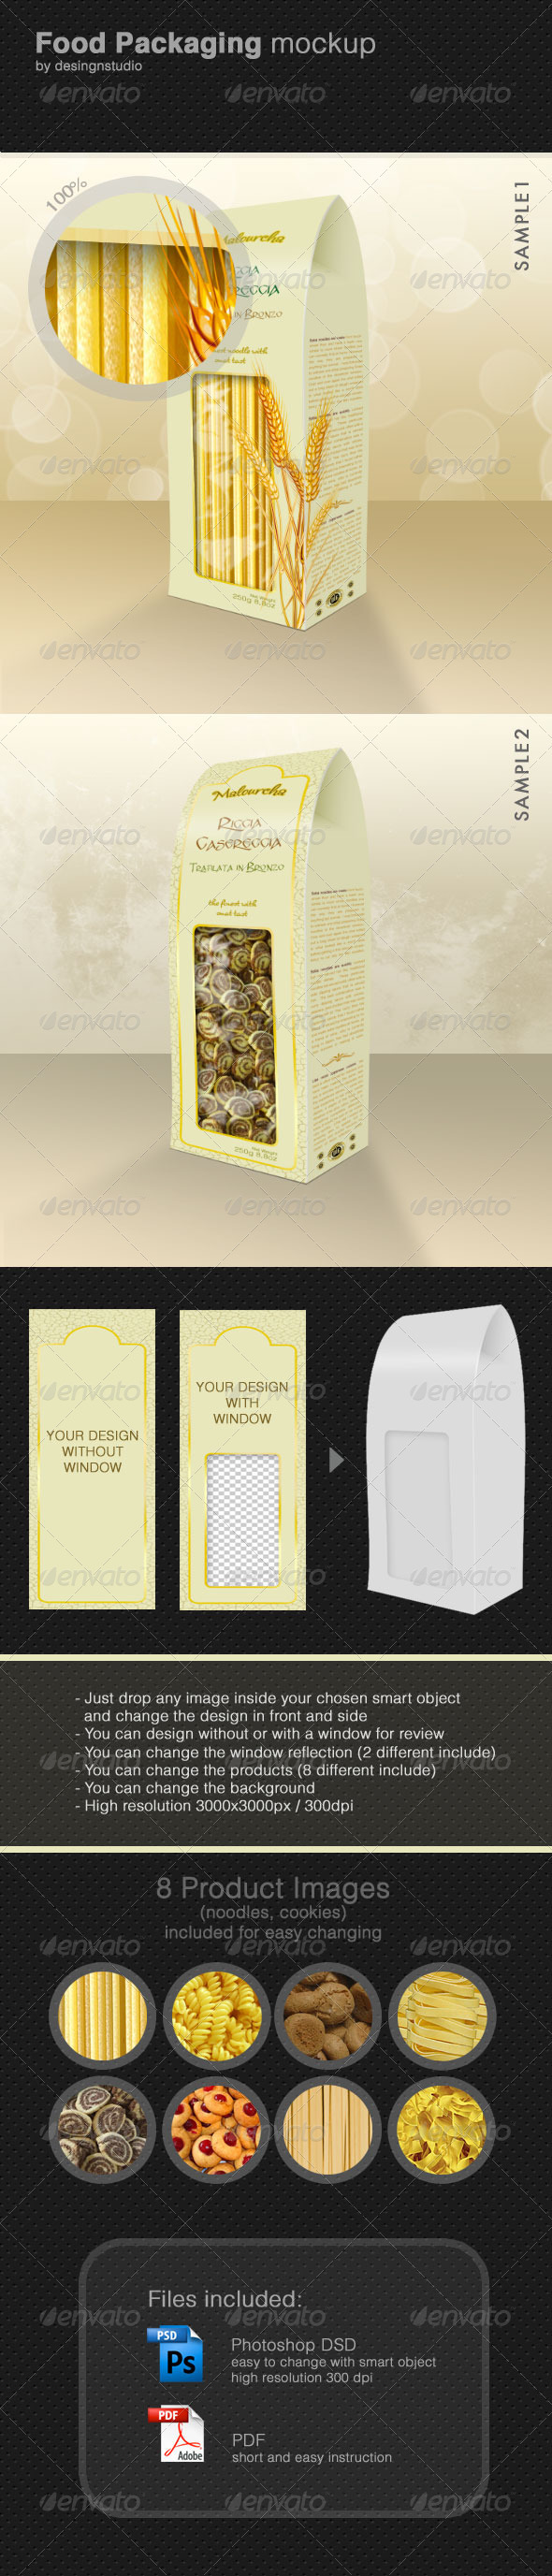 Food Packaging Mock-Up - Food and Drink Packaging